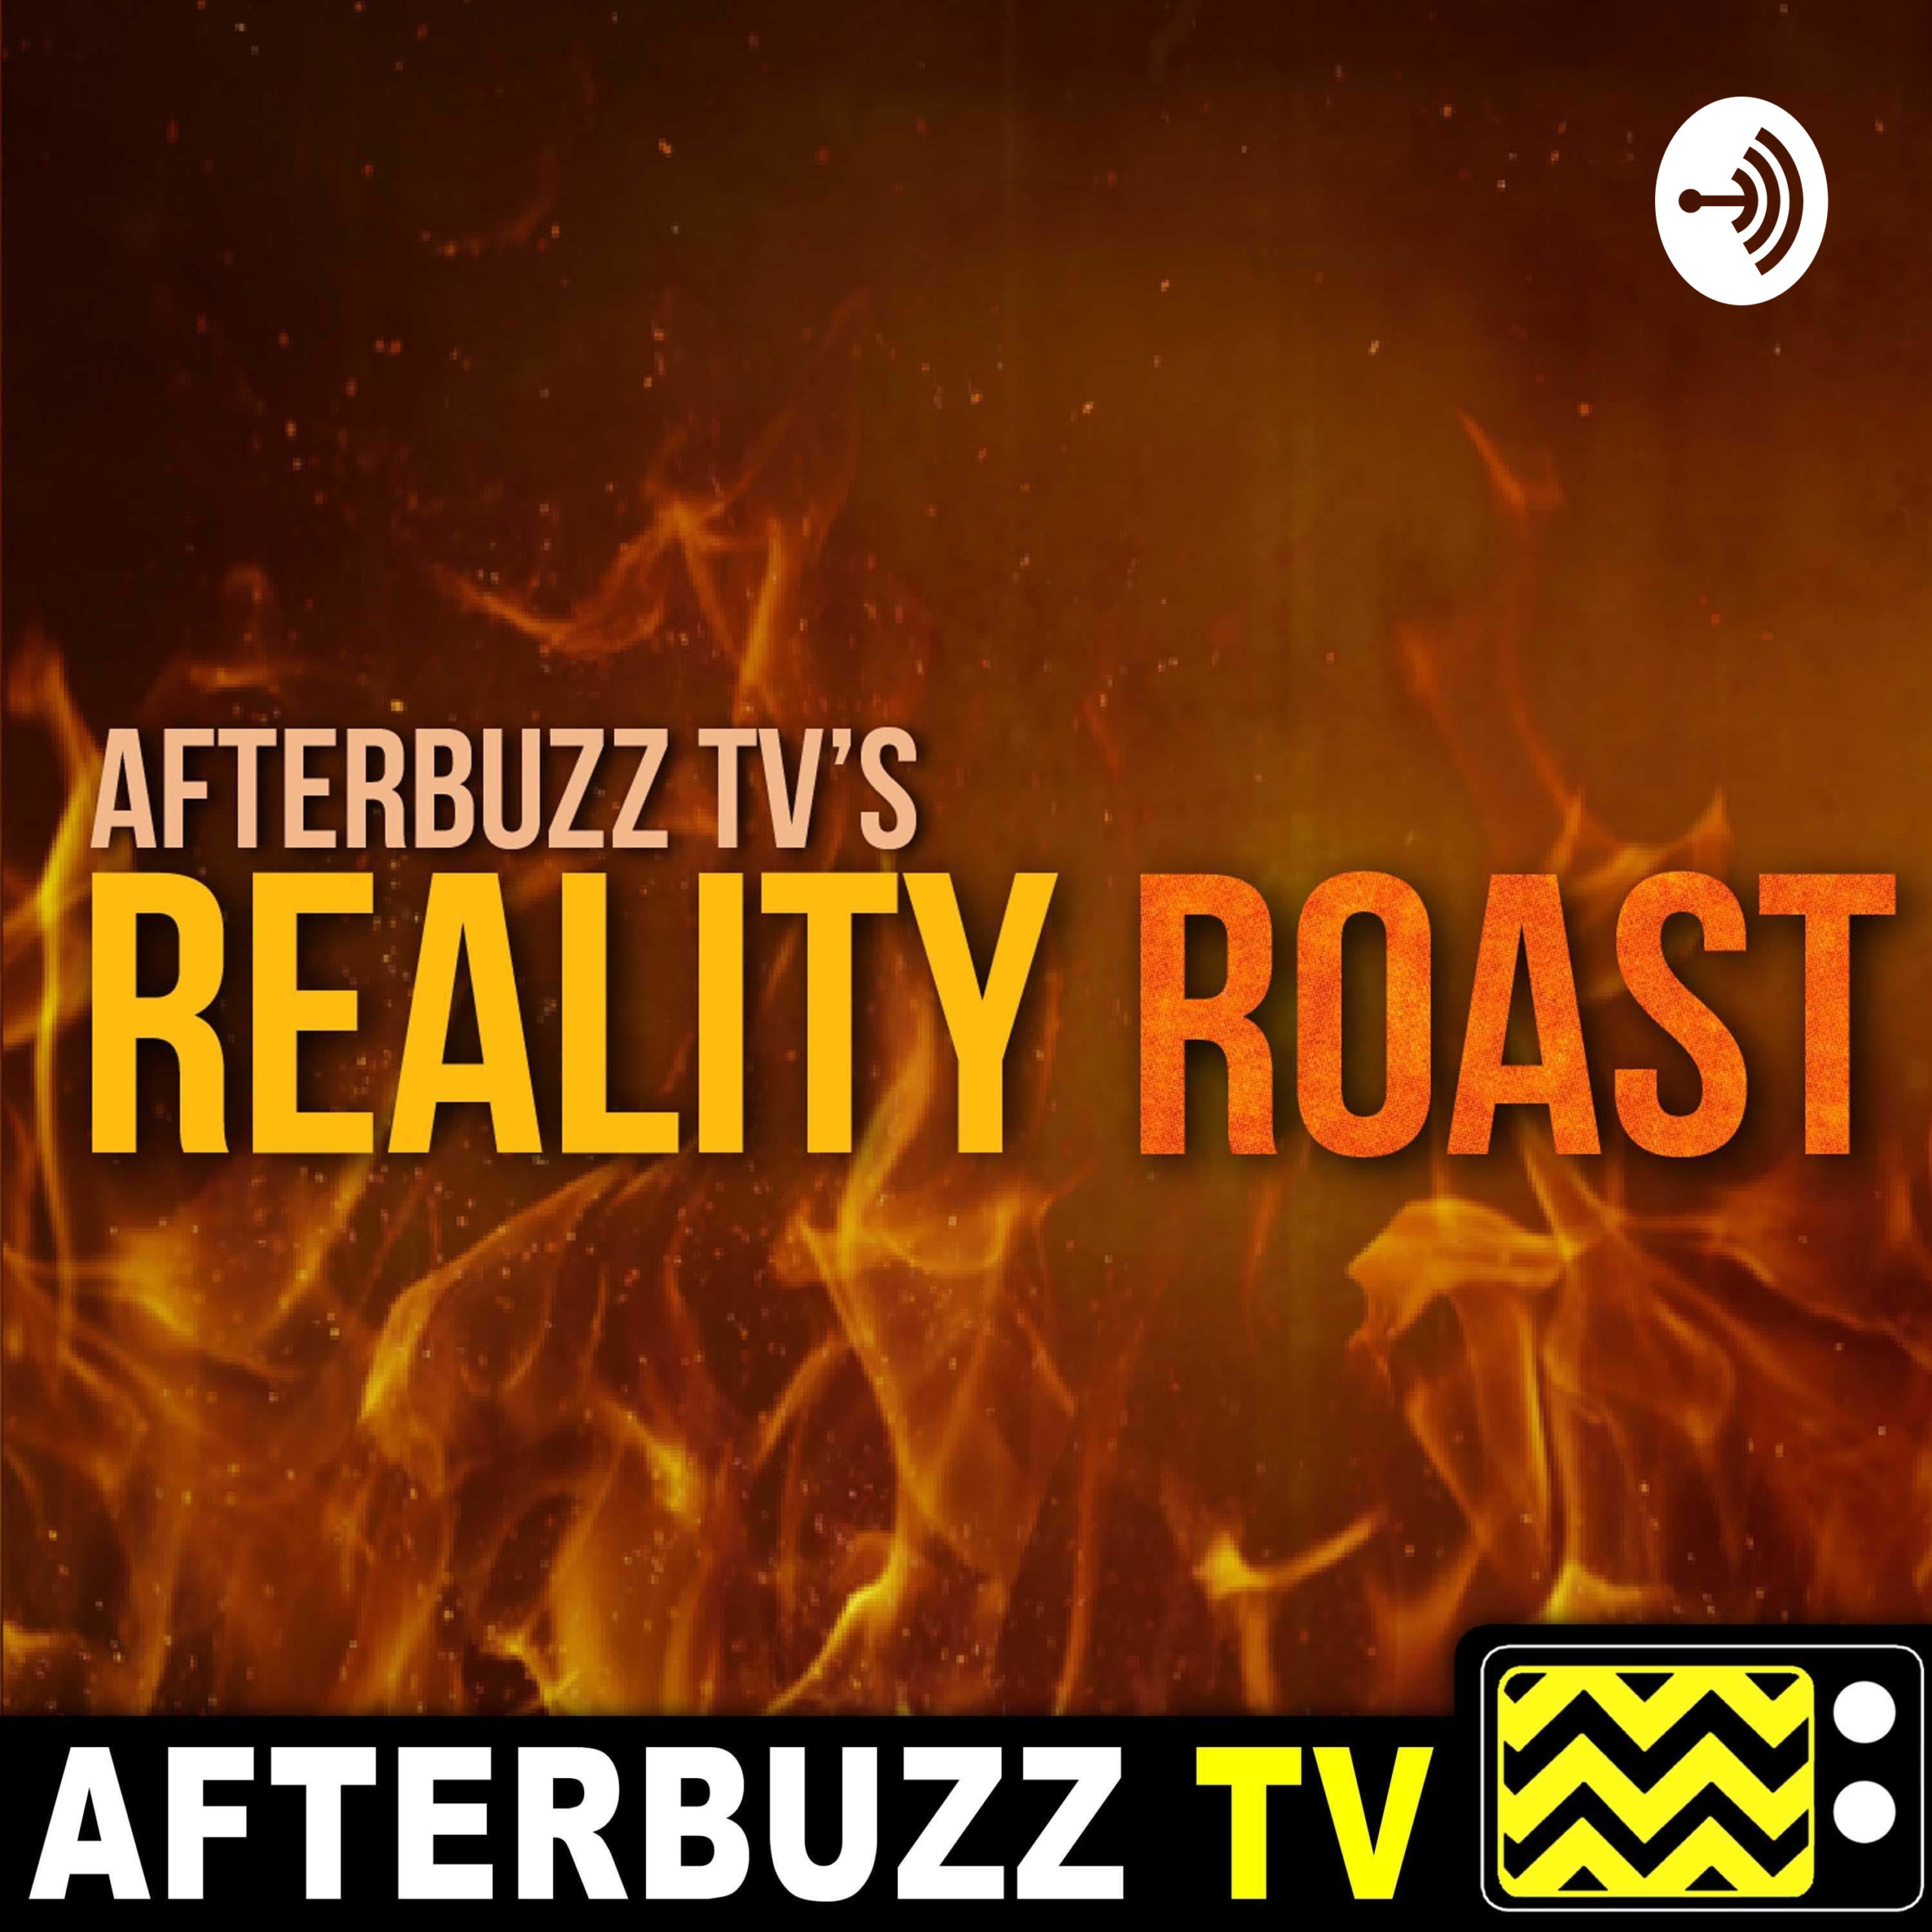 The Reality Roast Podcast